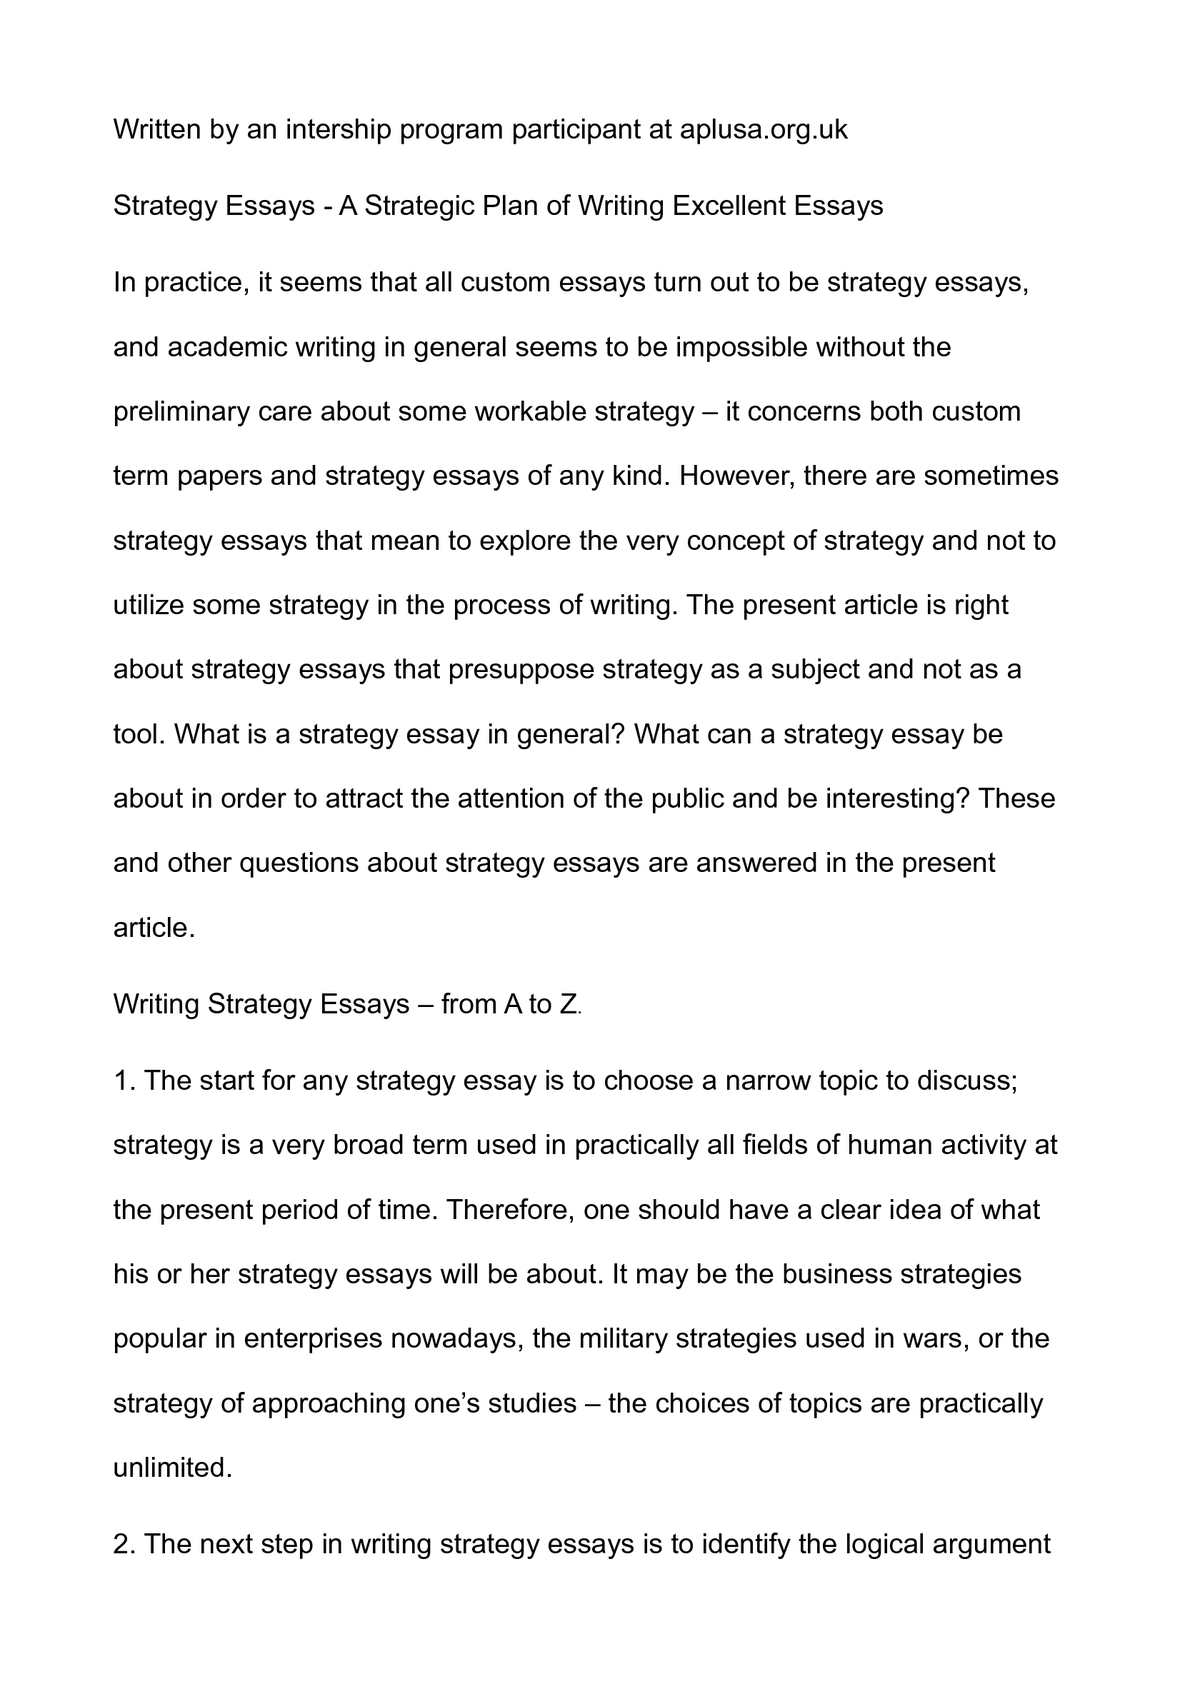 calamo  strategy essays  a strategic plan of writing excellent essays